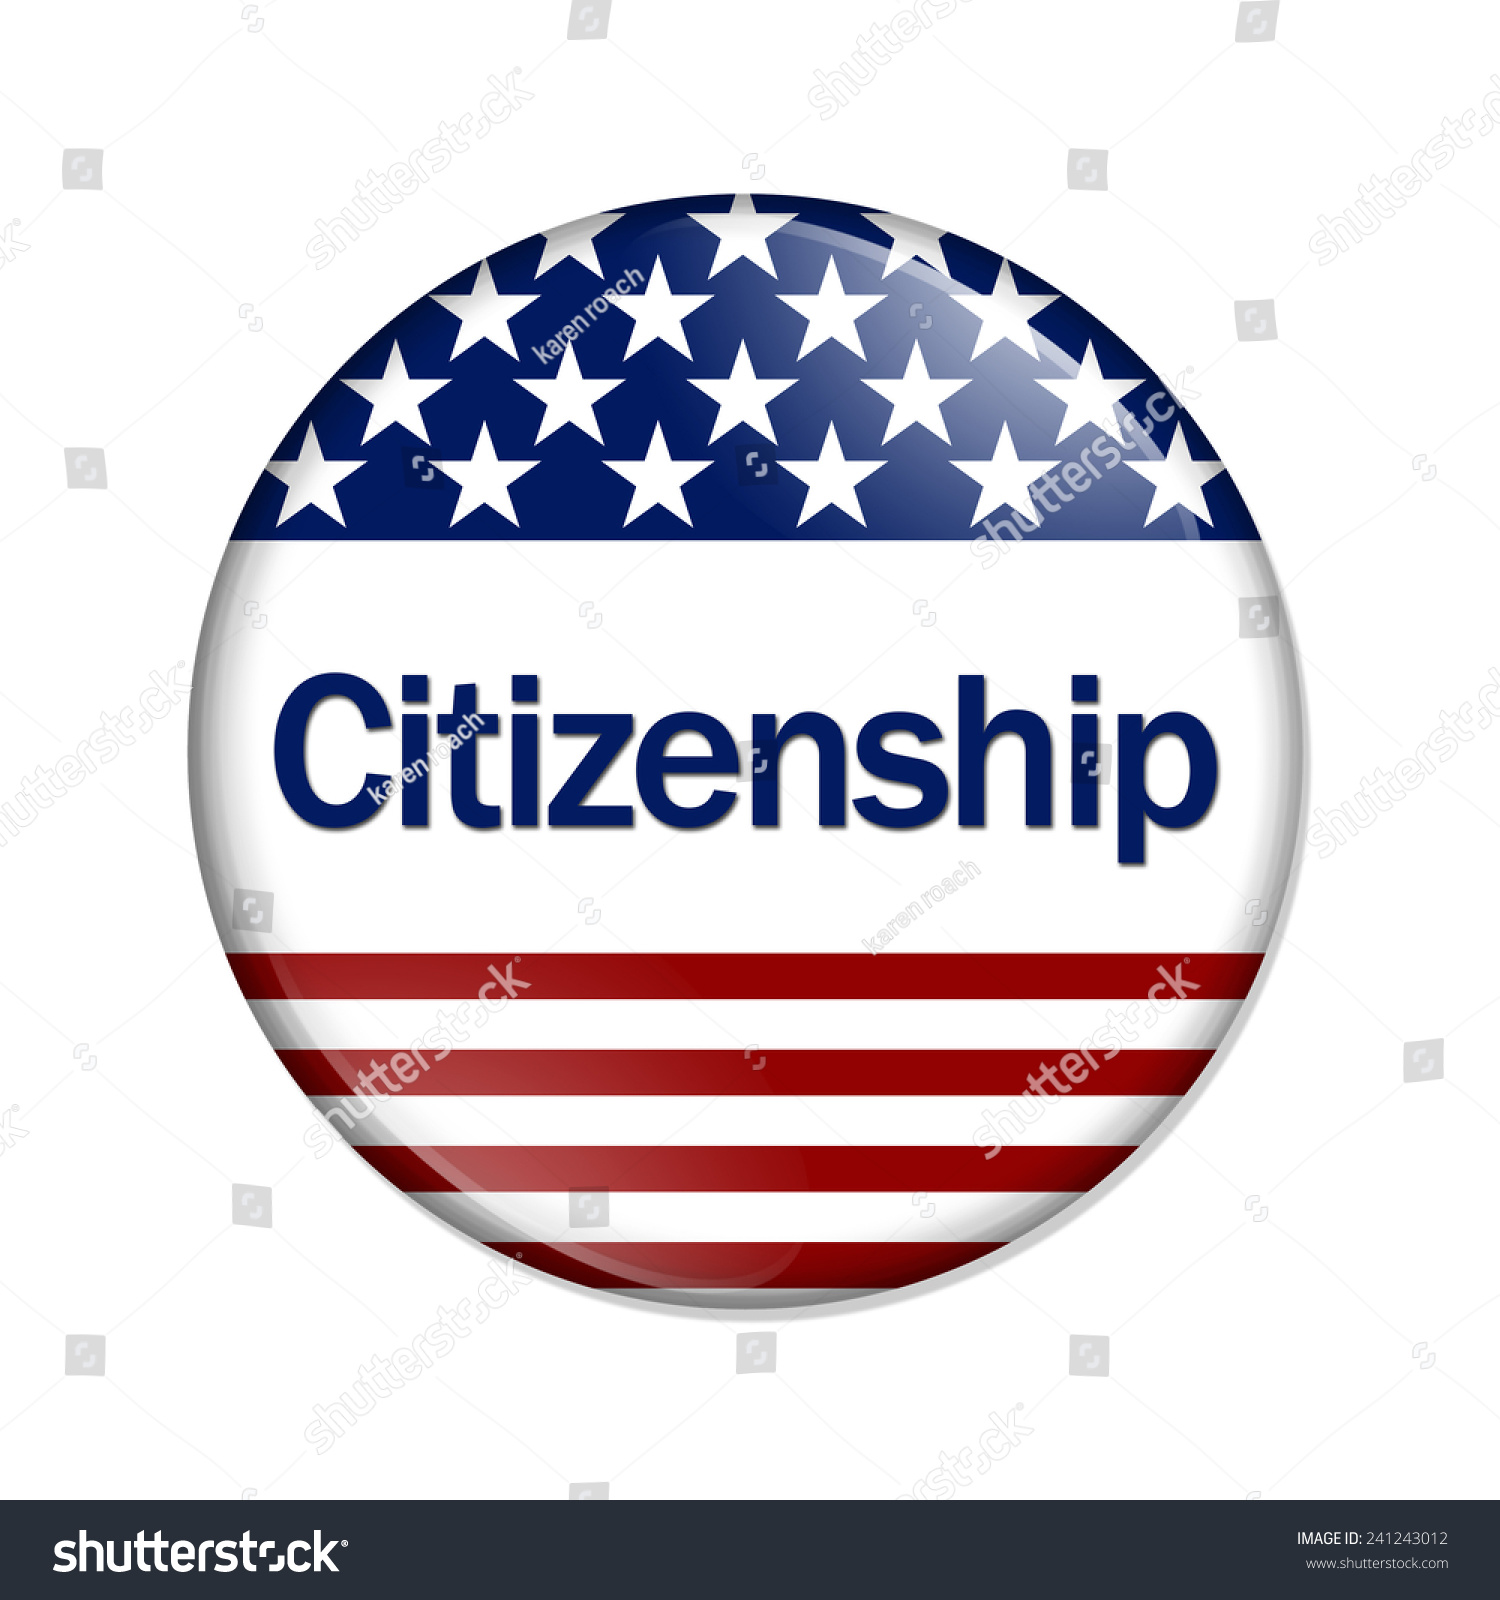 Citizenship: Citizenship Button , A White Button With Red Stripes And